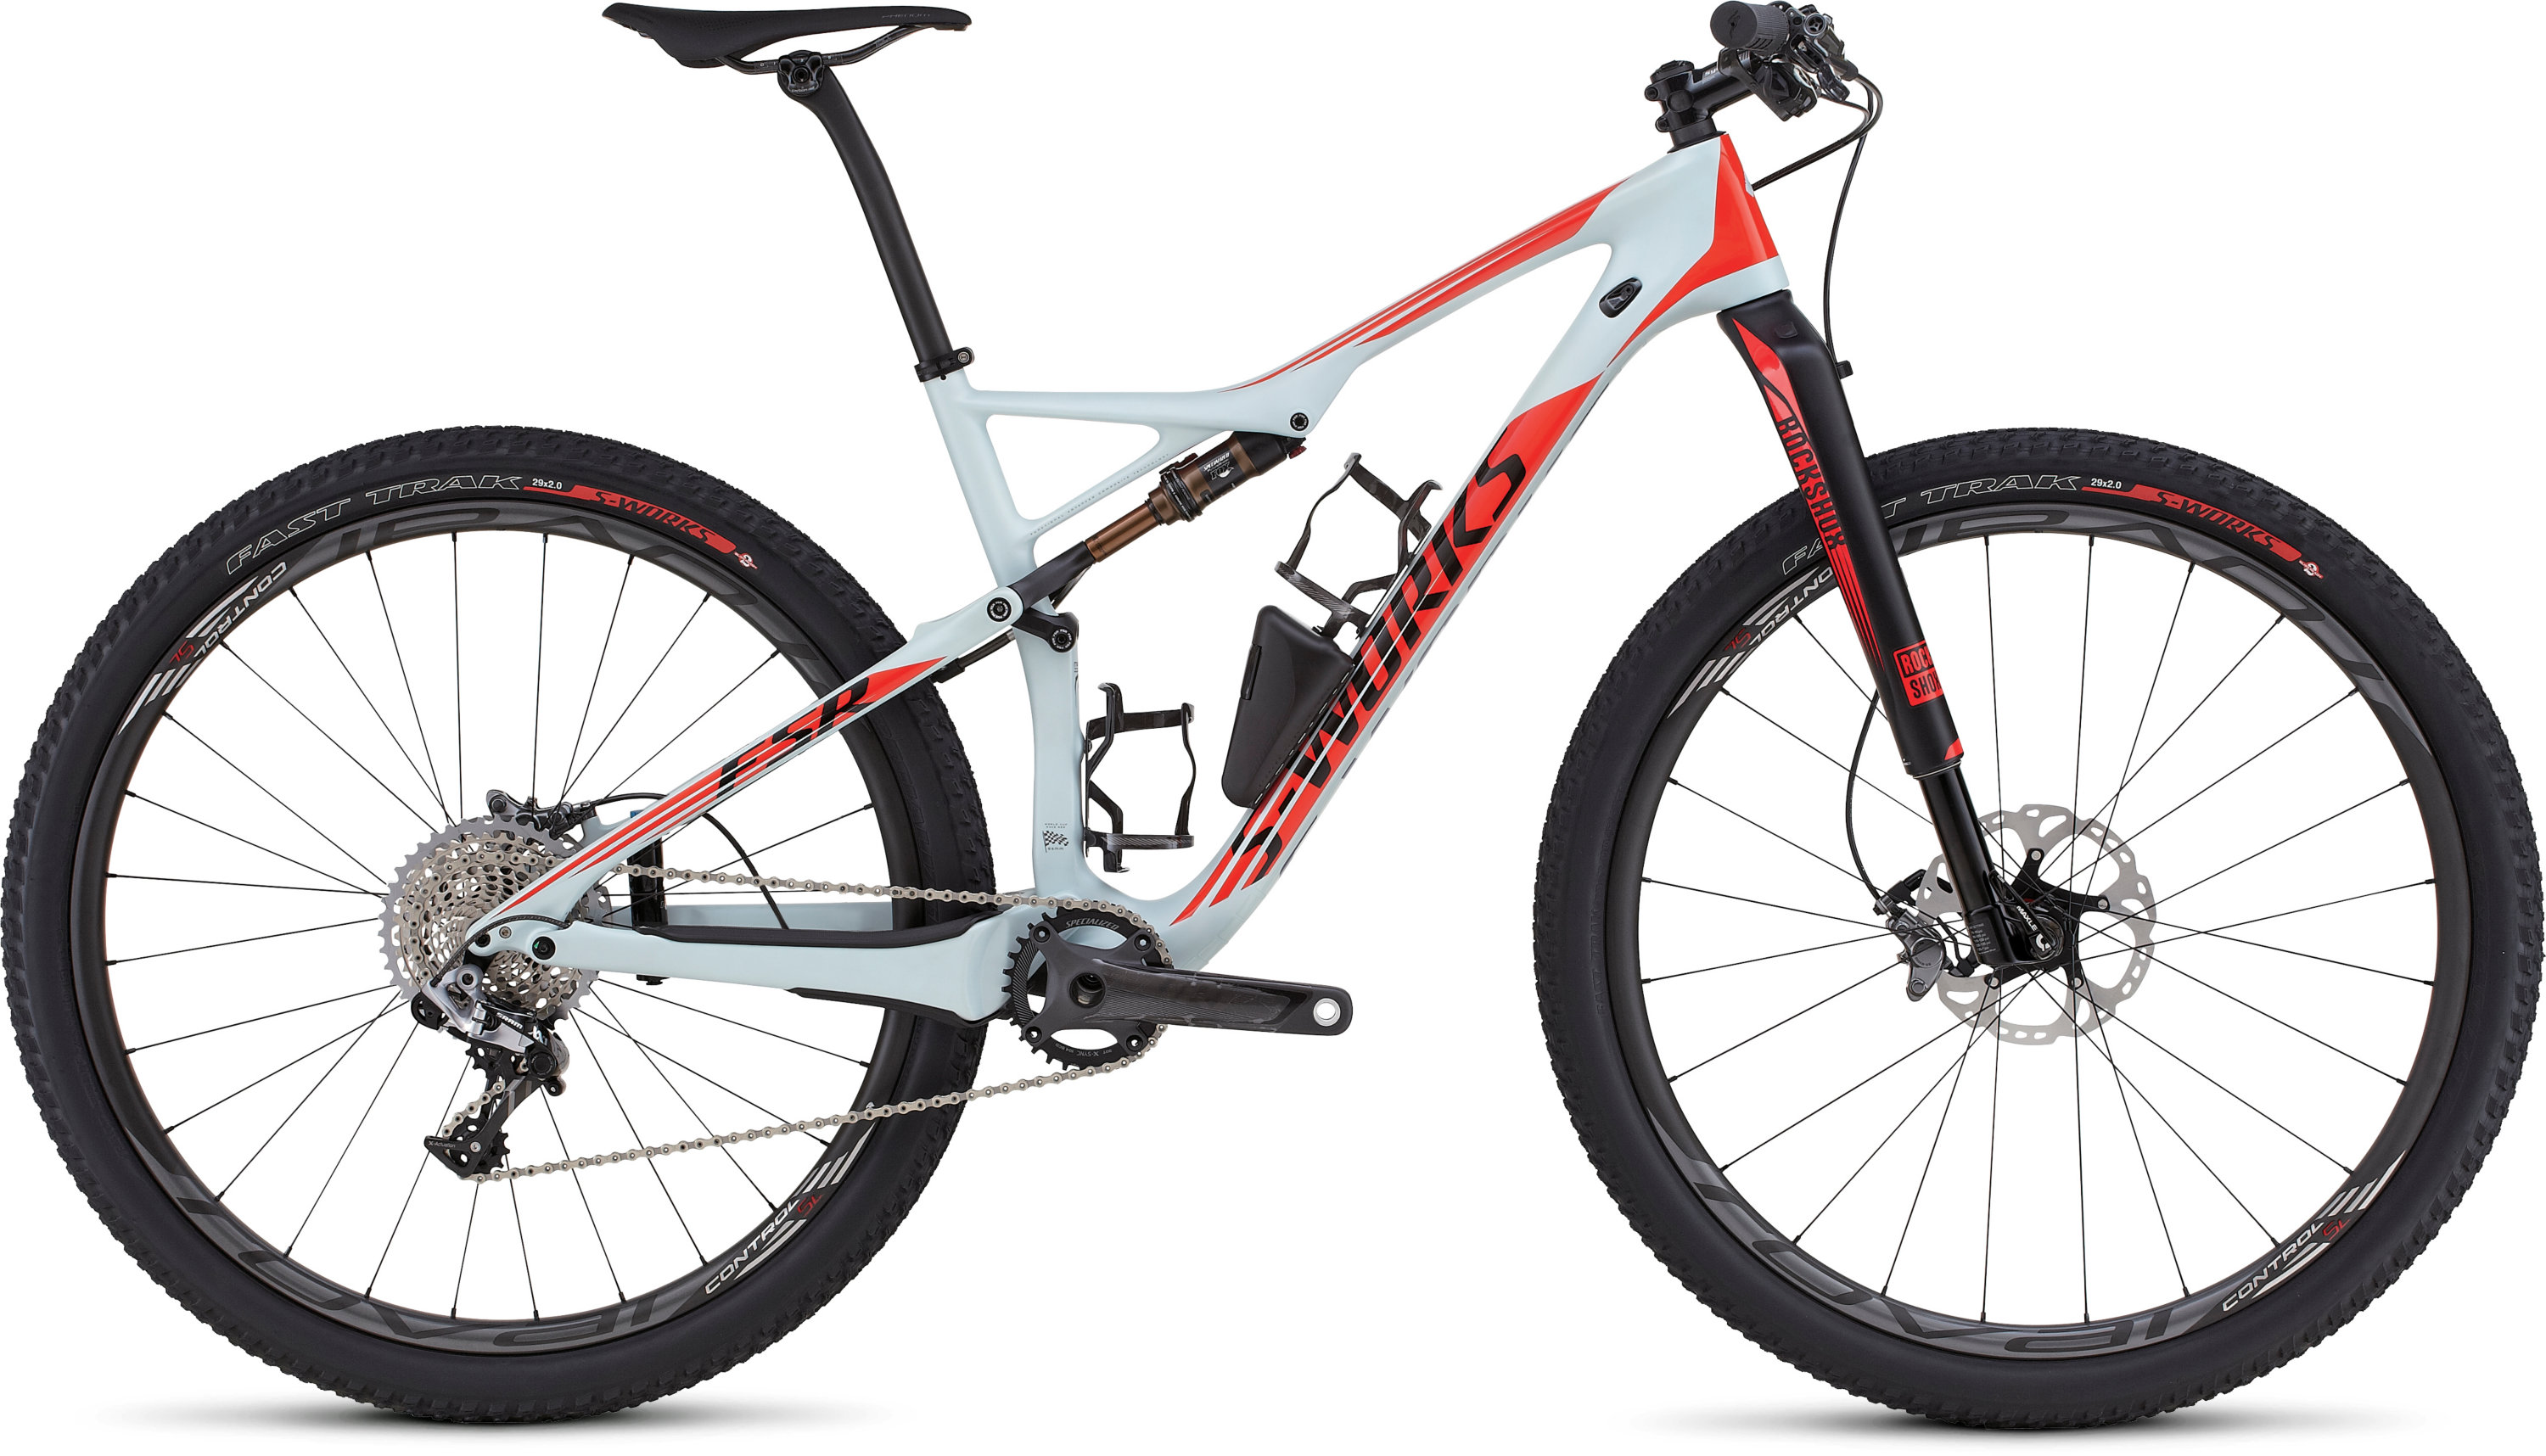 SPECIALIZED SW EPIC FSR CARBON WC 29 BBYBLU/RKTRED/BLK S - Bikedreams & Dustbikes